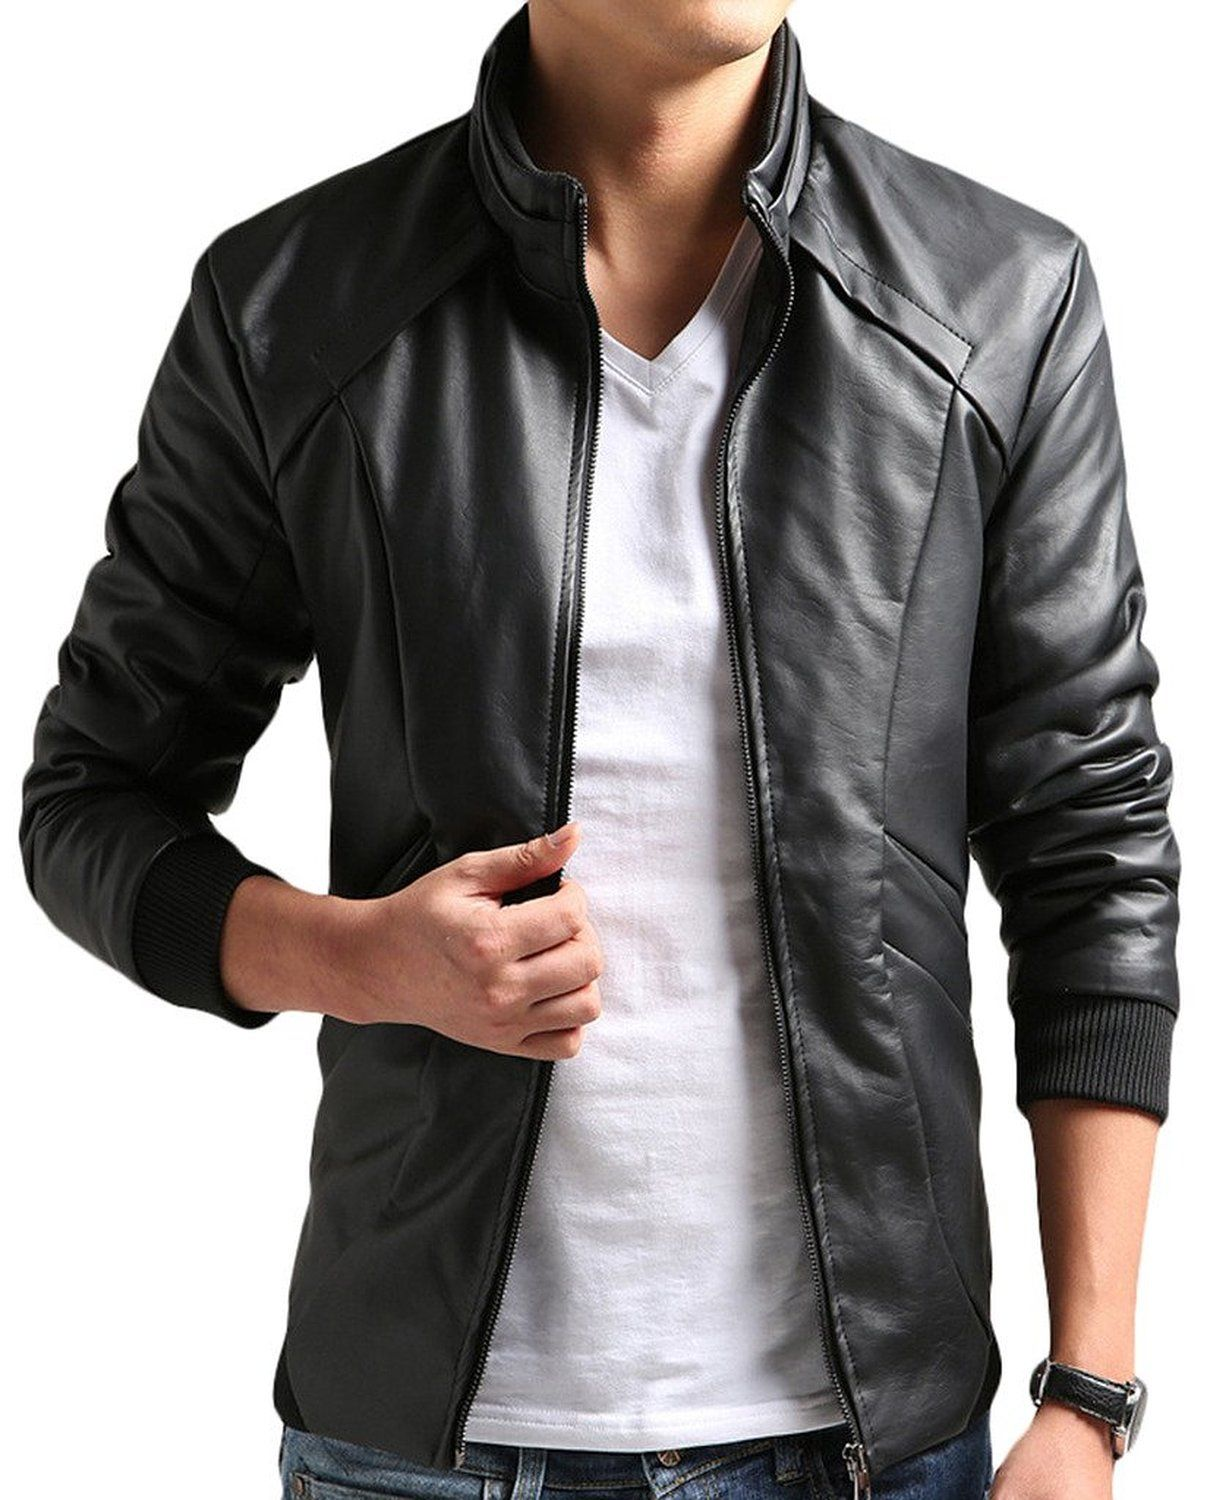 ZSHOW Men's Casual Leisure PU Faux Leather Jacket at